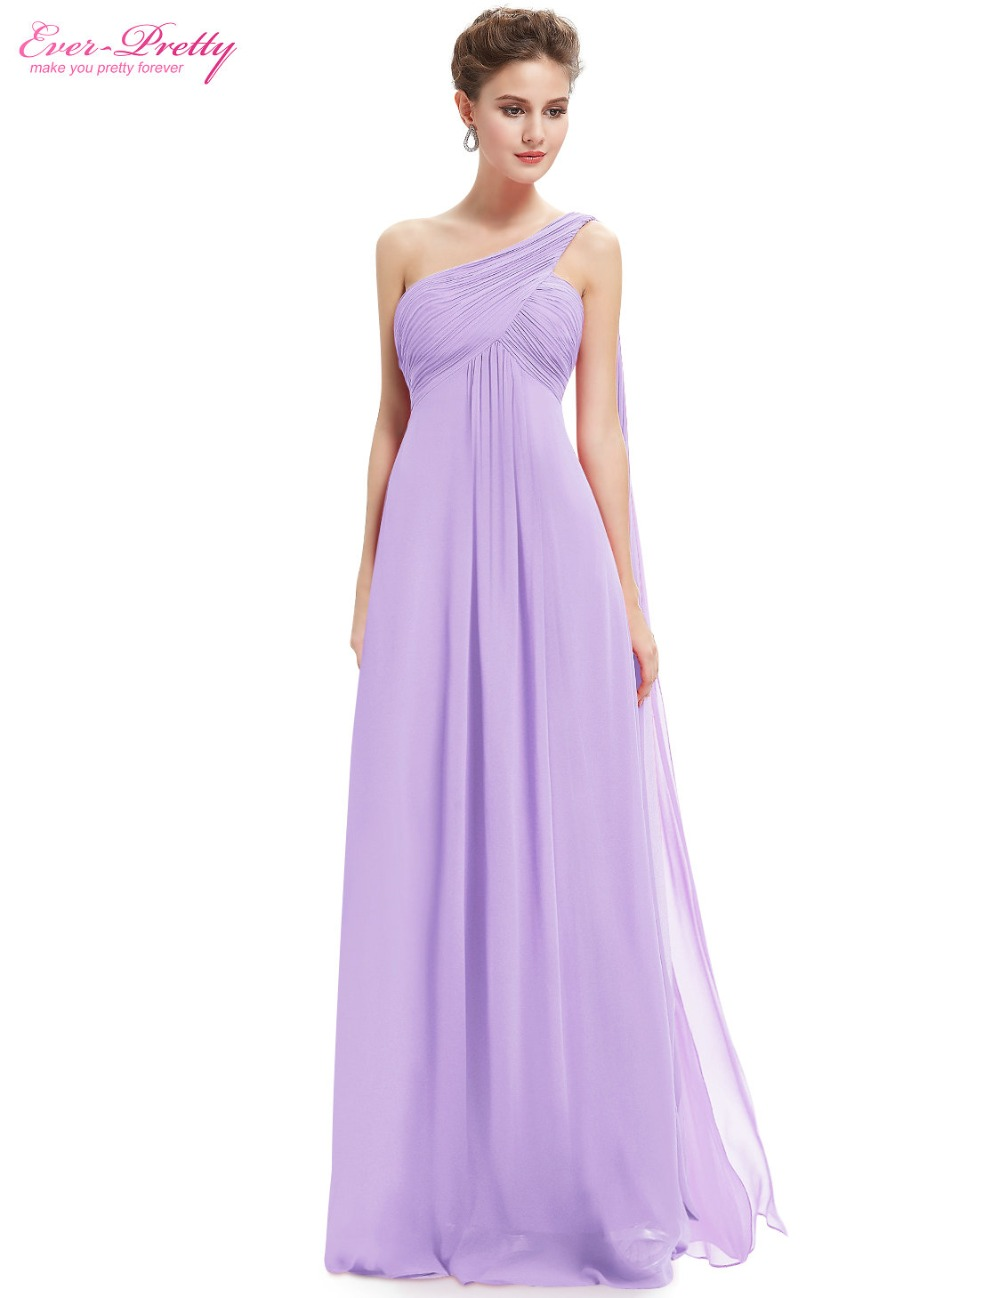 Long Fitted Evening Dress Promotion-Shop for Promotional Long ...